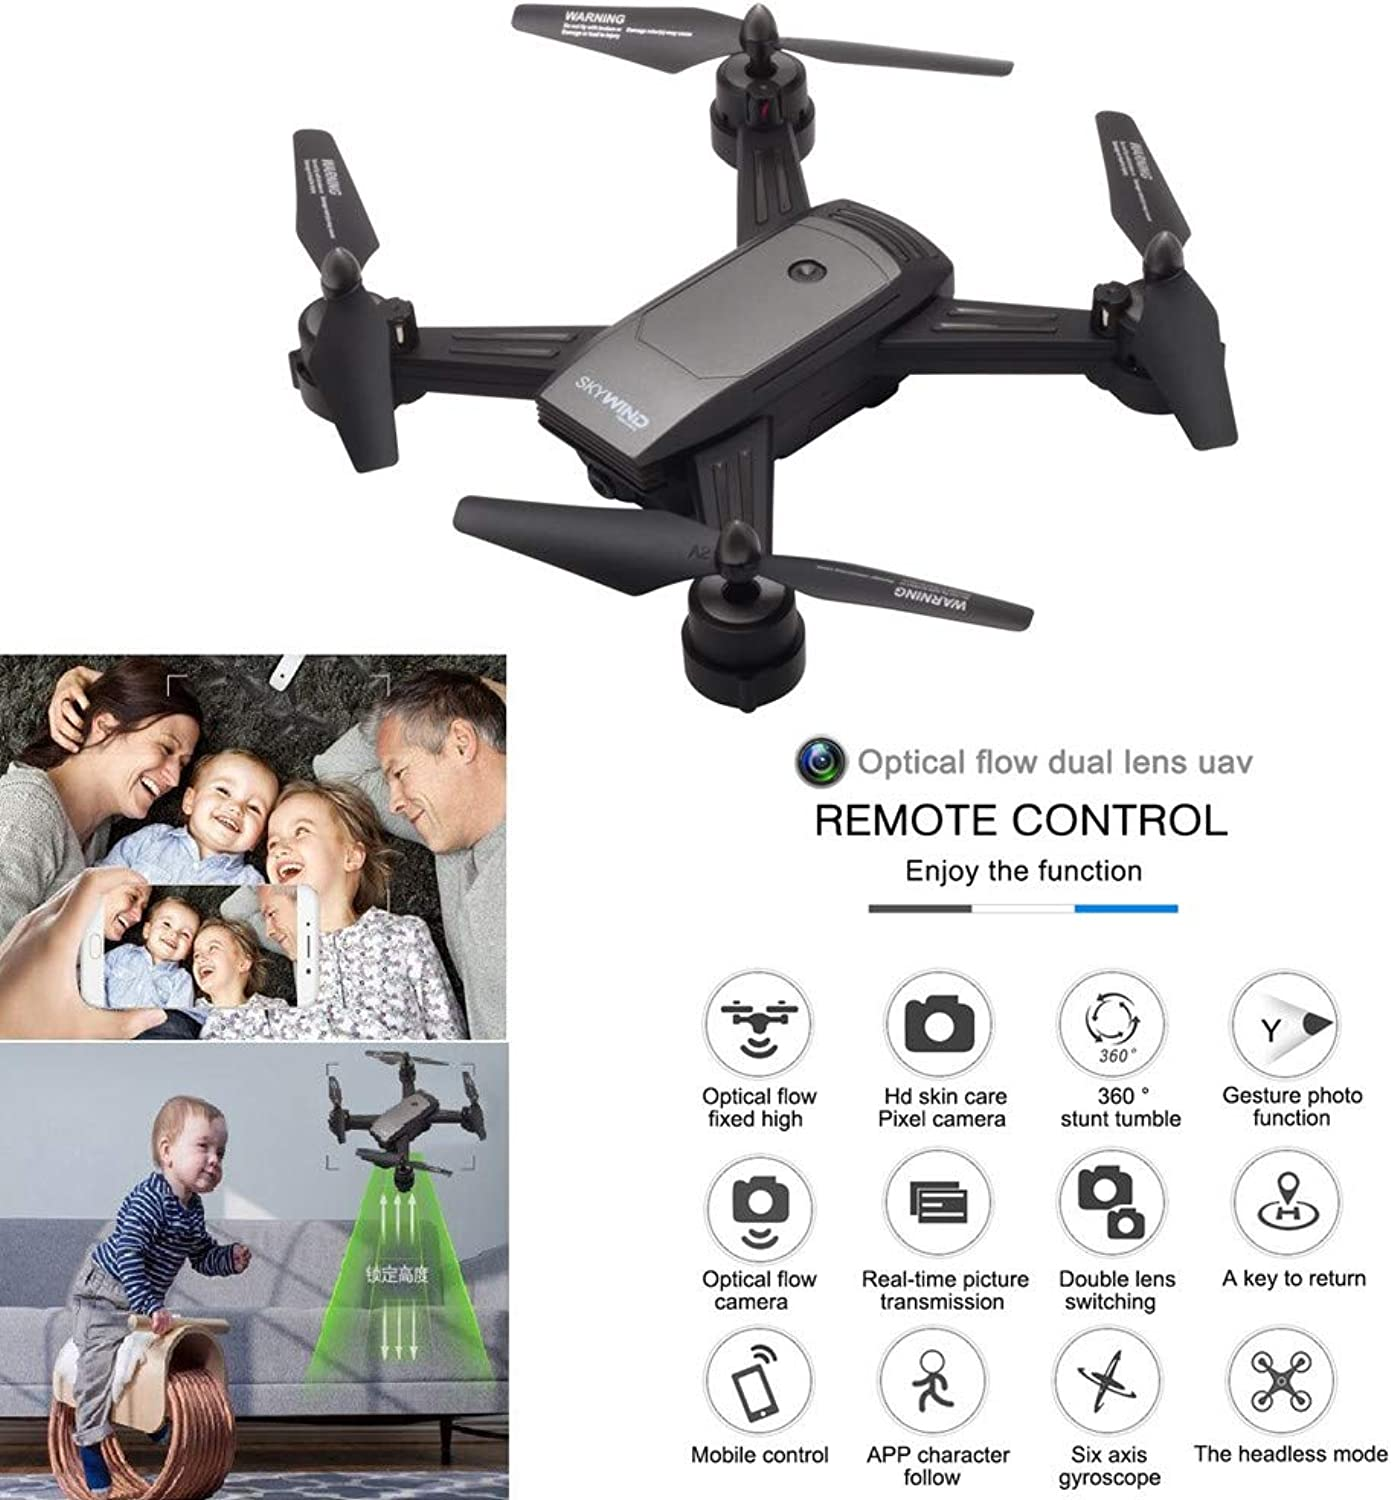 Dinglong 720P HD FPV WiFi Camera Drone for Beginners with Altitude Hold, APP Control, 3D Flips, Headless Mode, One Key Operation,Gesture Photo,2.4GHz 4 CH 6 Axis Gyro RTF RC Quadcopter